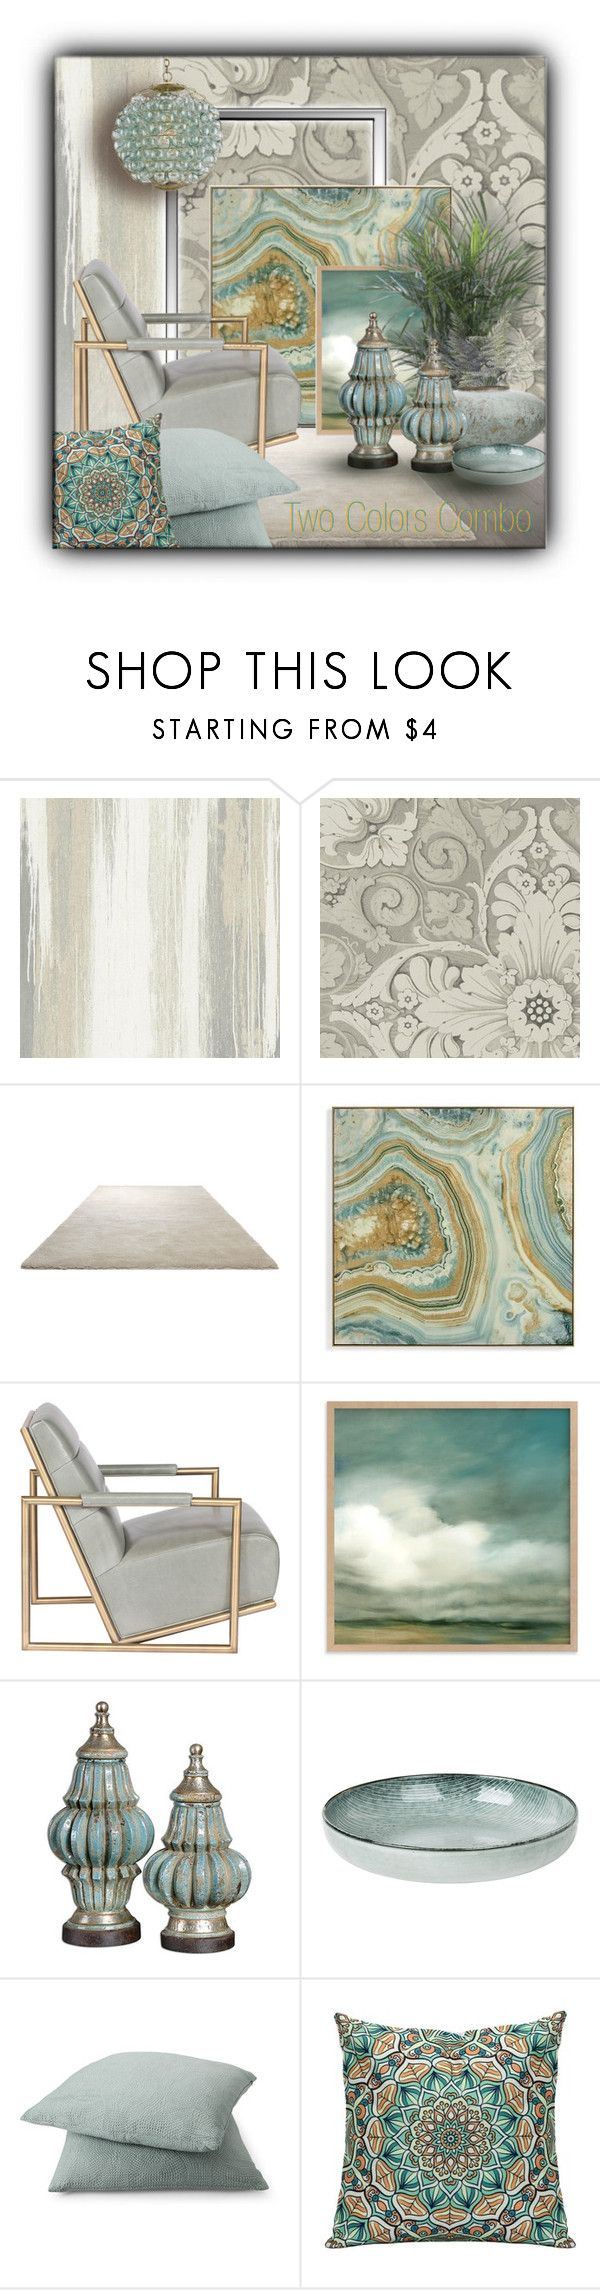 """""""Two Colors Combo"""" by sapora ❤ liked on Polyvore featuring interior, interiors, interior design, home, home decor, interior decorating, York Wallcoverings, ESPRIT, Grandin Road and Rodeo Home"""